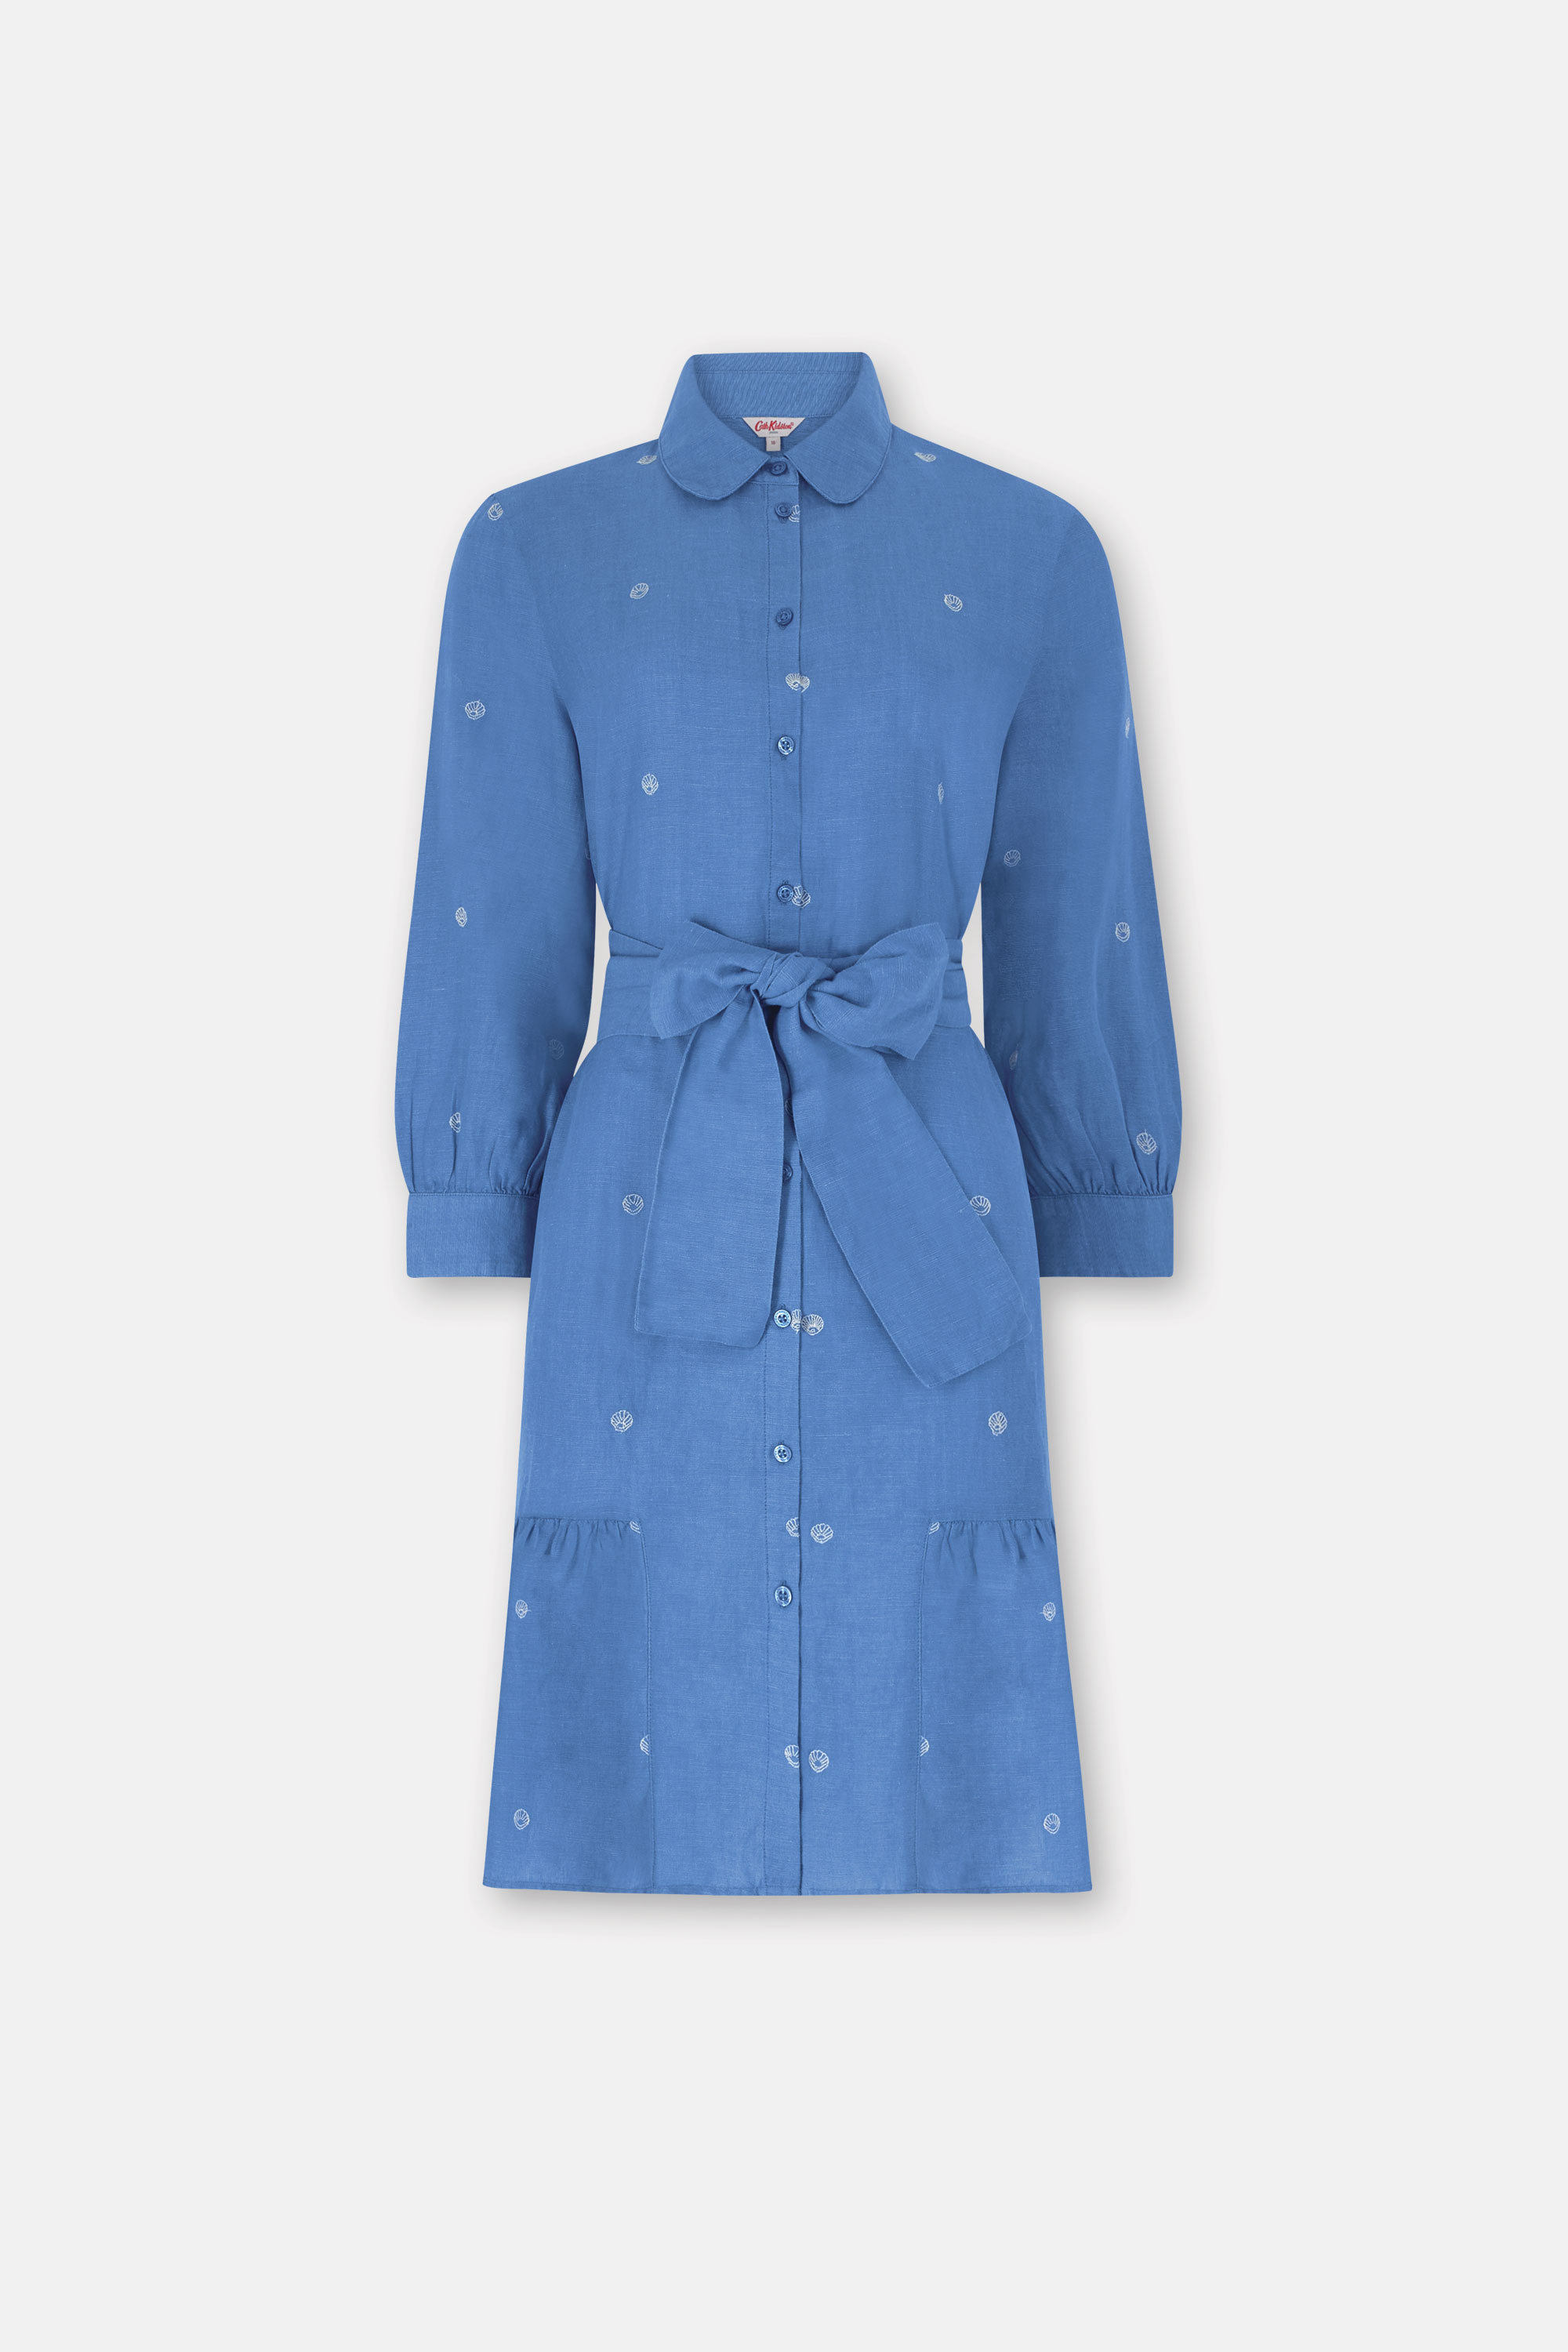 Cath Kidston Shells Print Embroidered Shirt Dress in Chambray, Seaside Shells, 100% Linen, 18